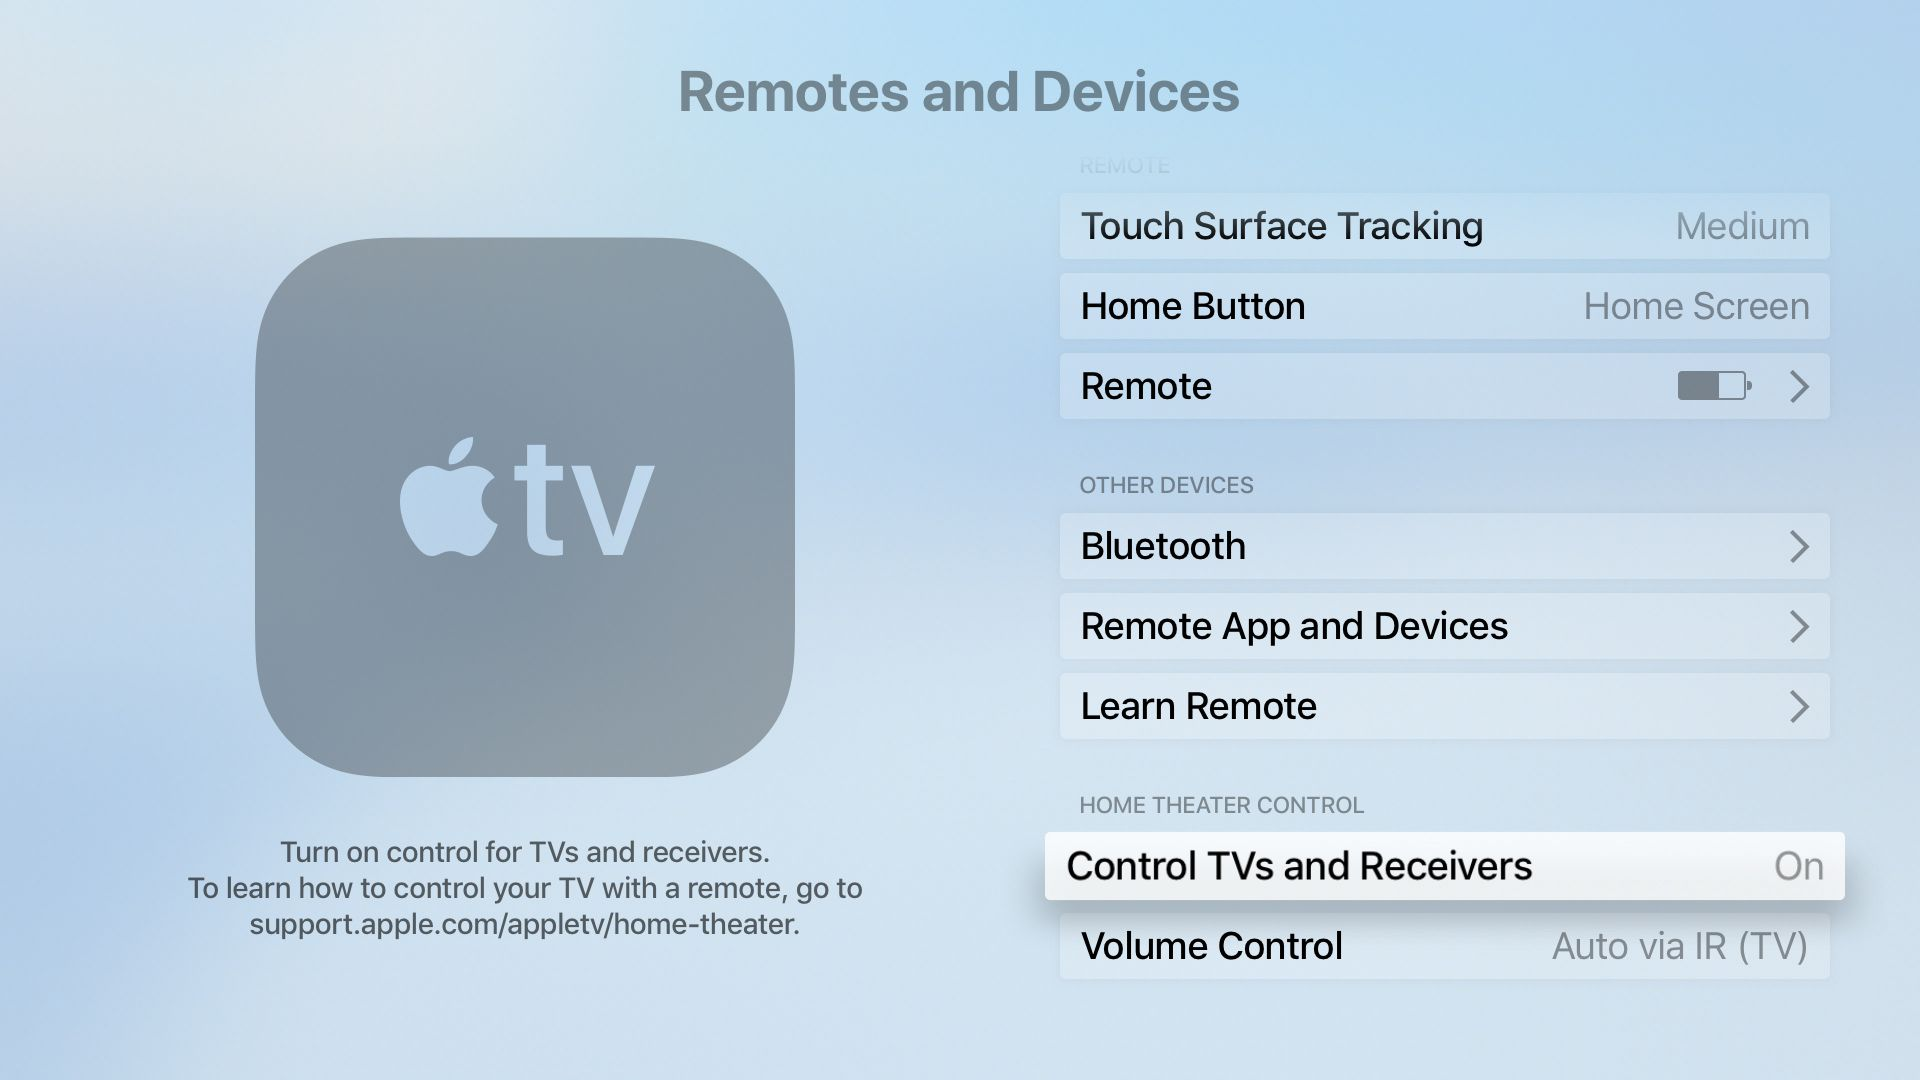 Settings that let the Apple TV control an HDTV